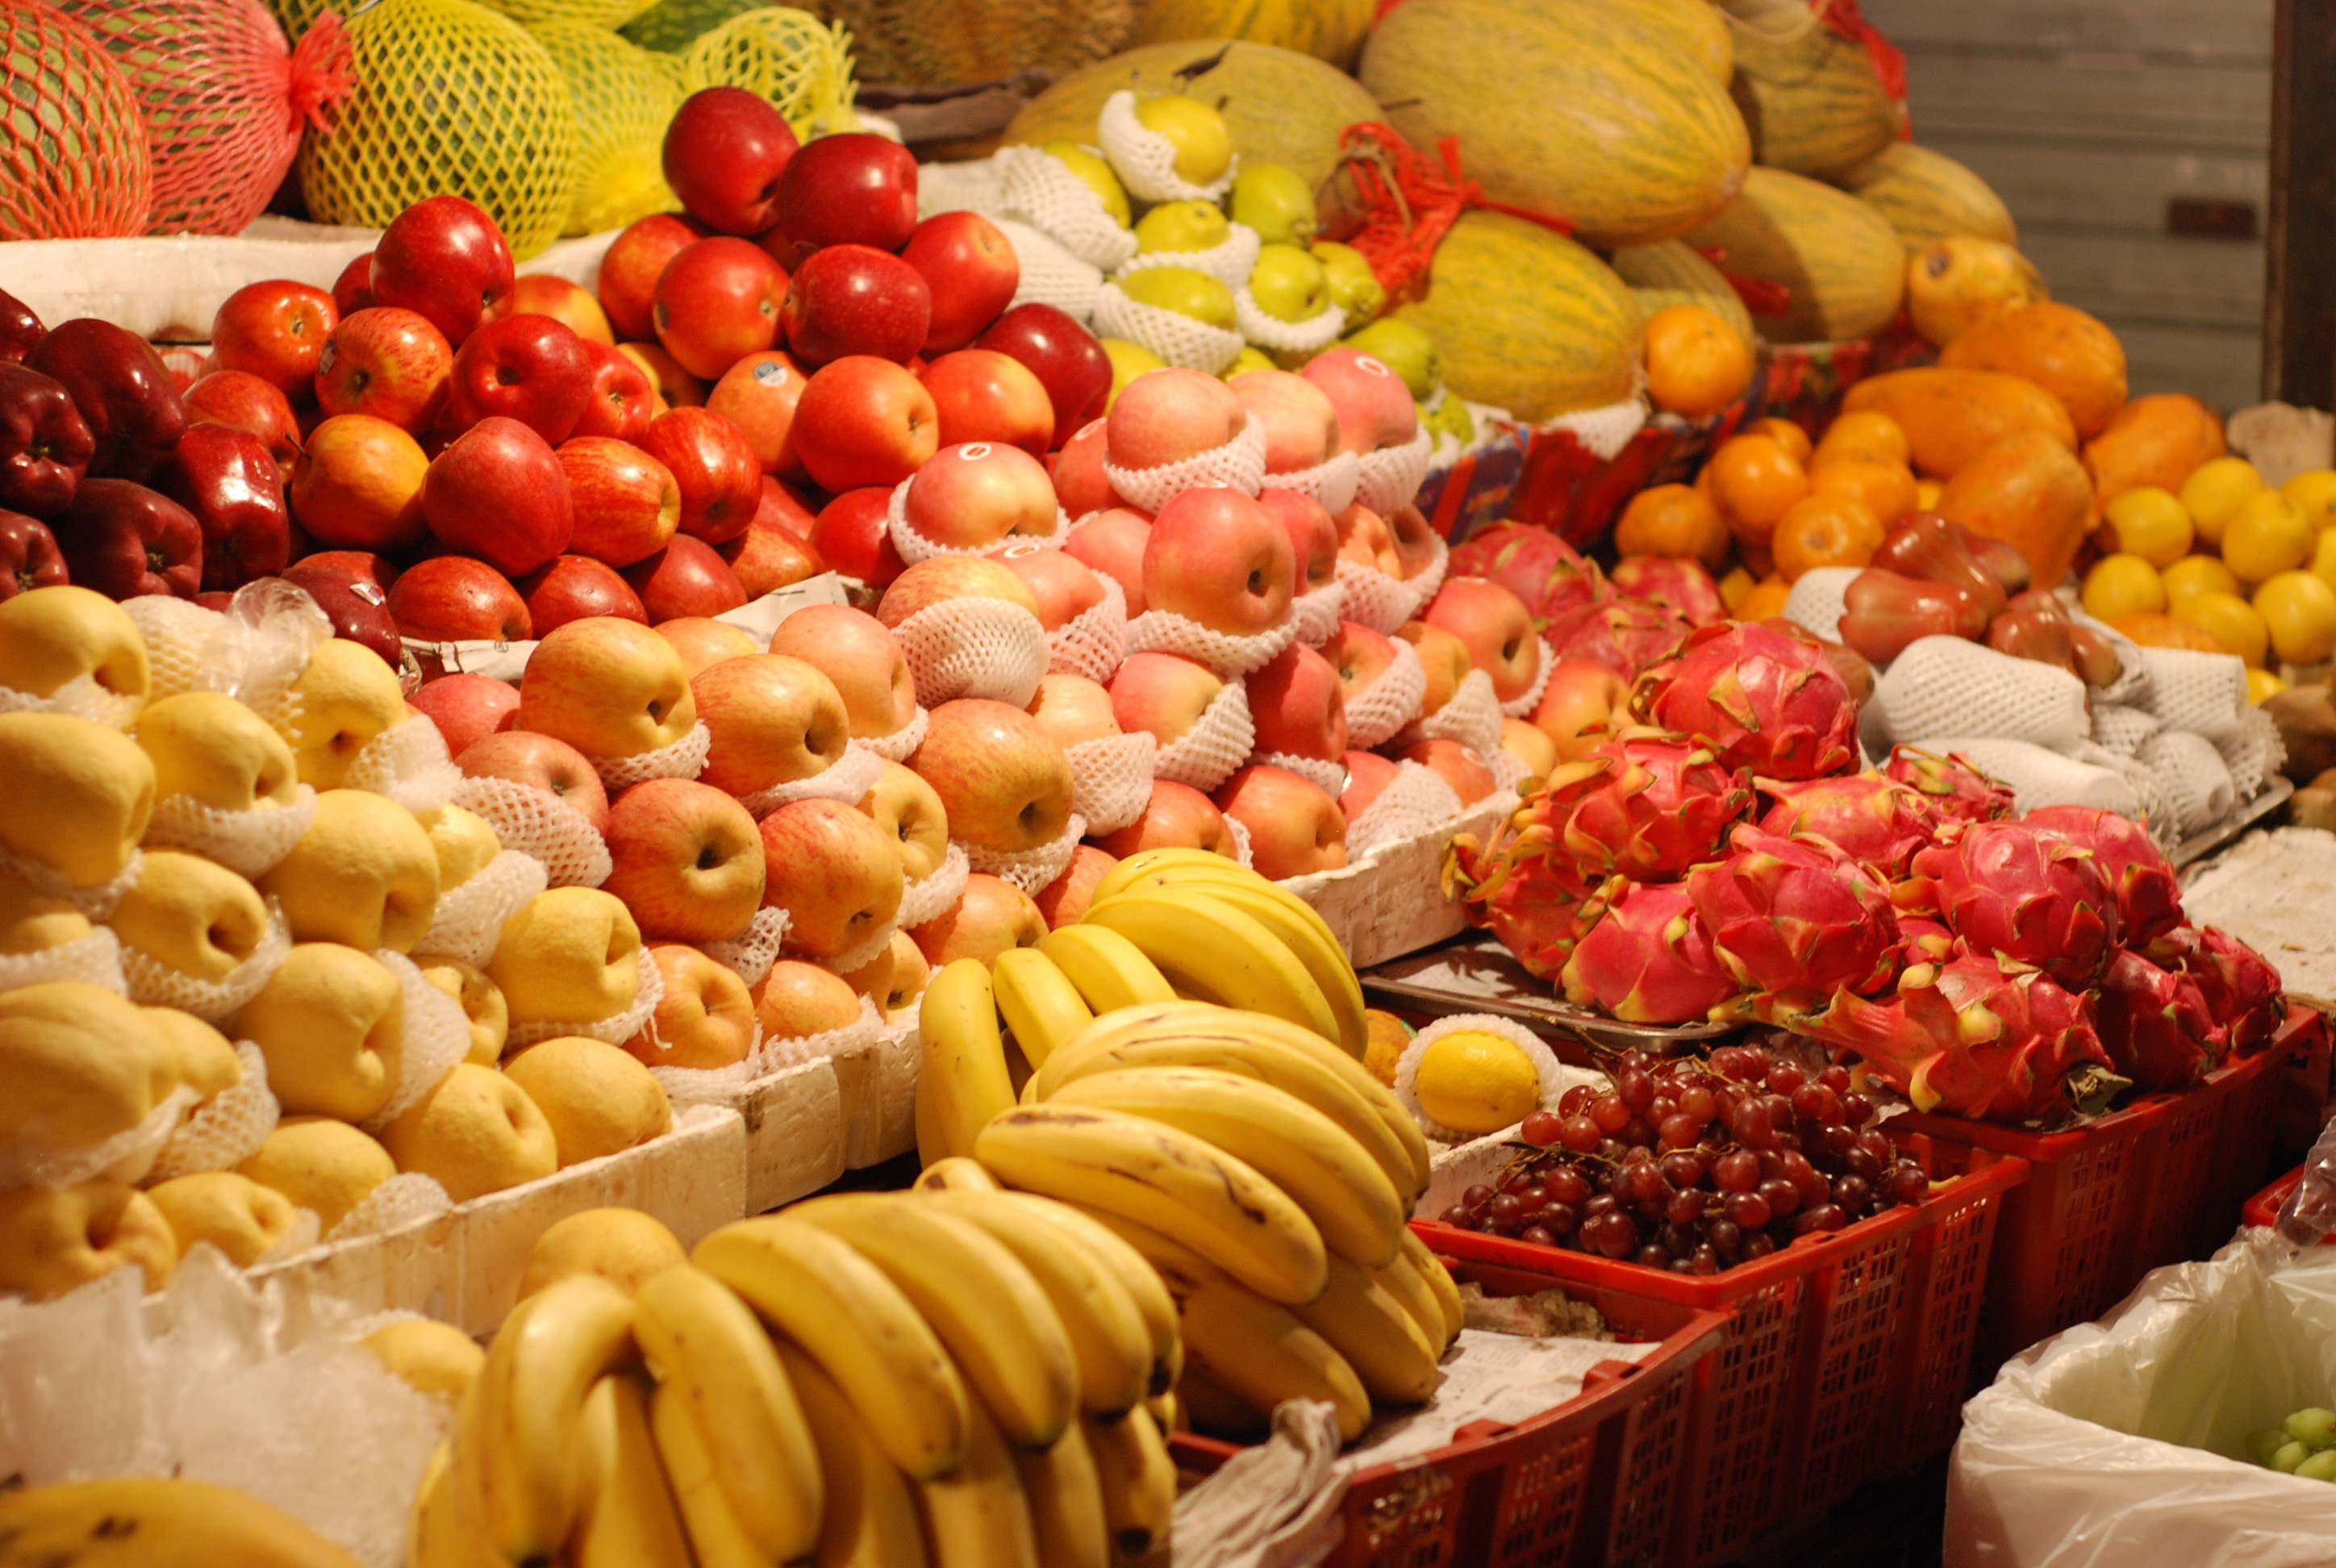 fruits bananas apples HD Wallpaper